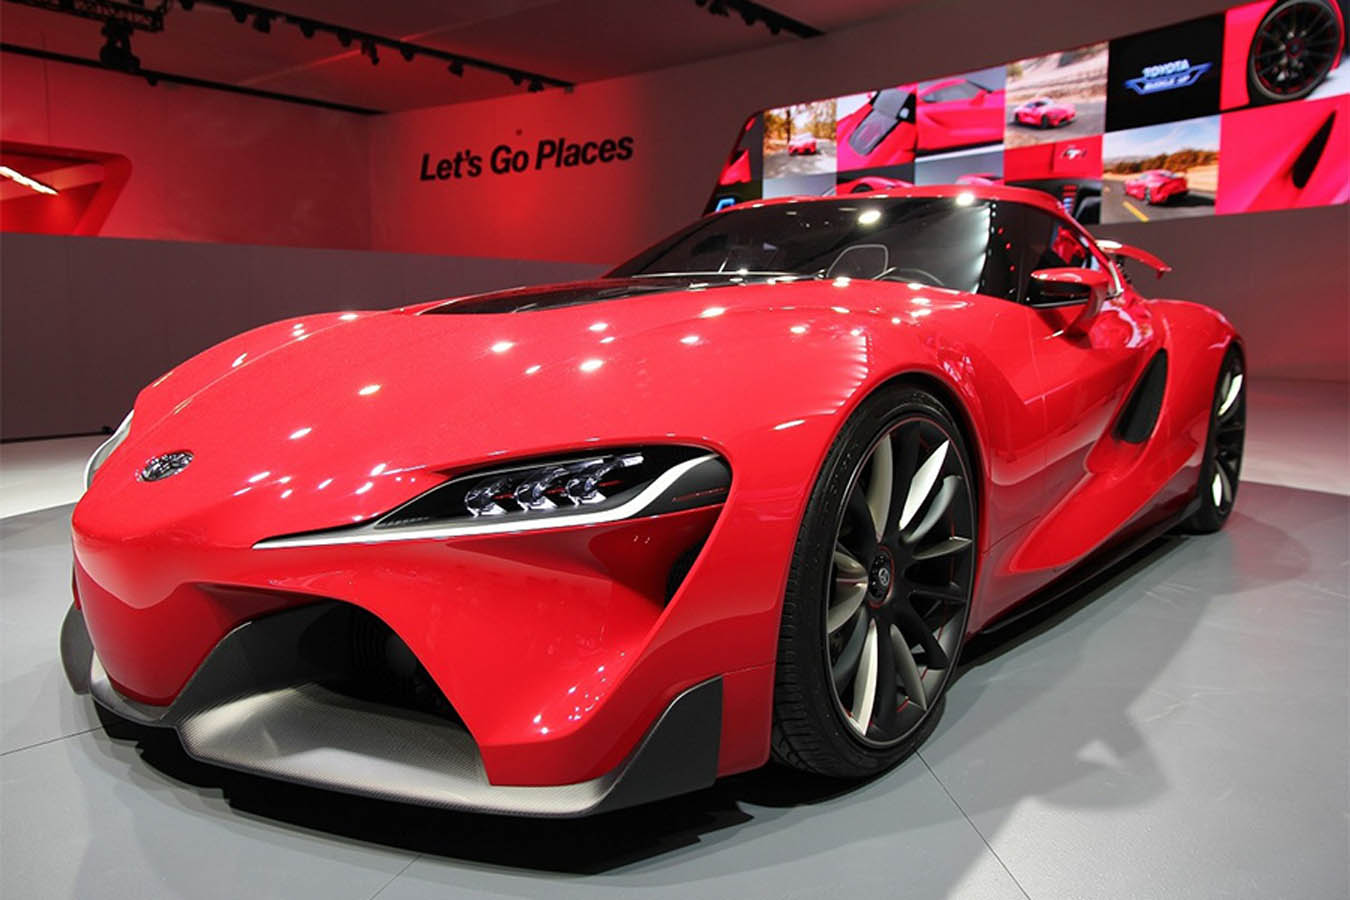 2015 toyota supra widescreen - photo #21